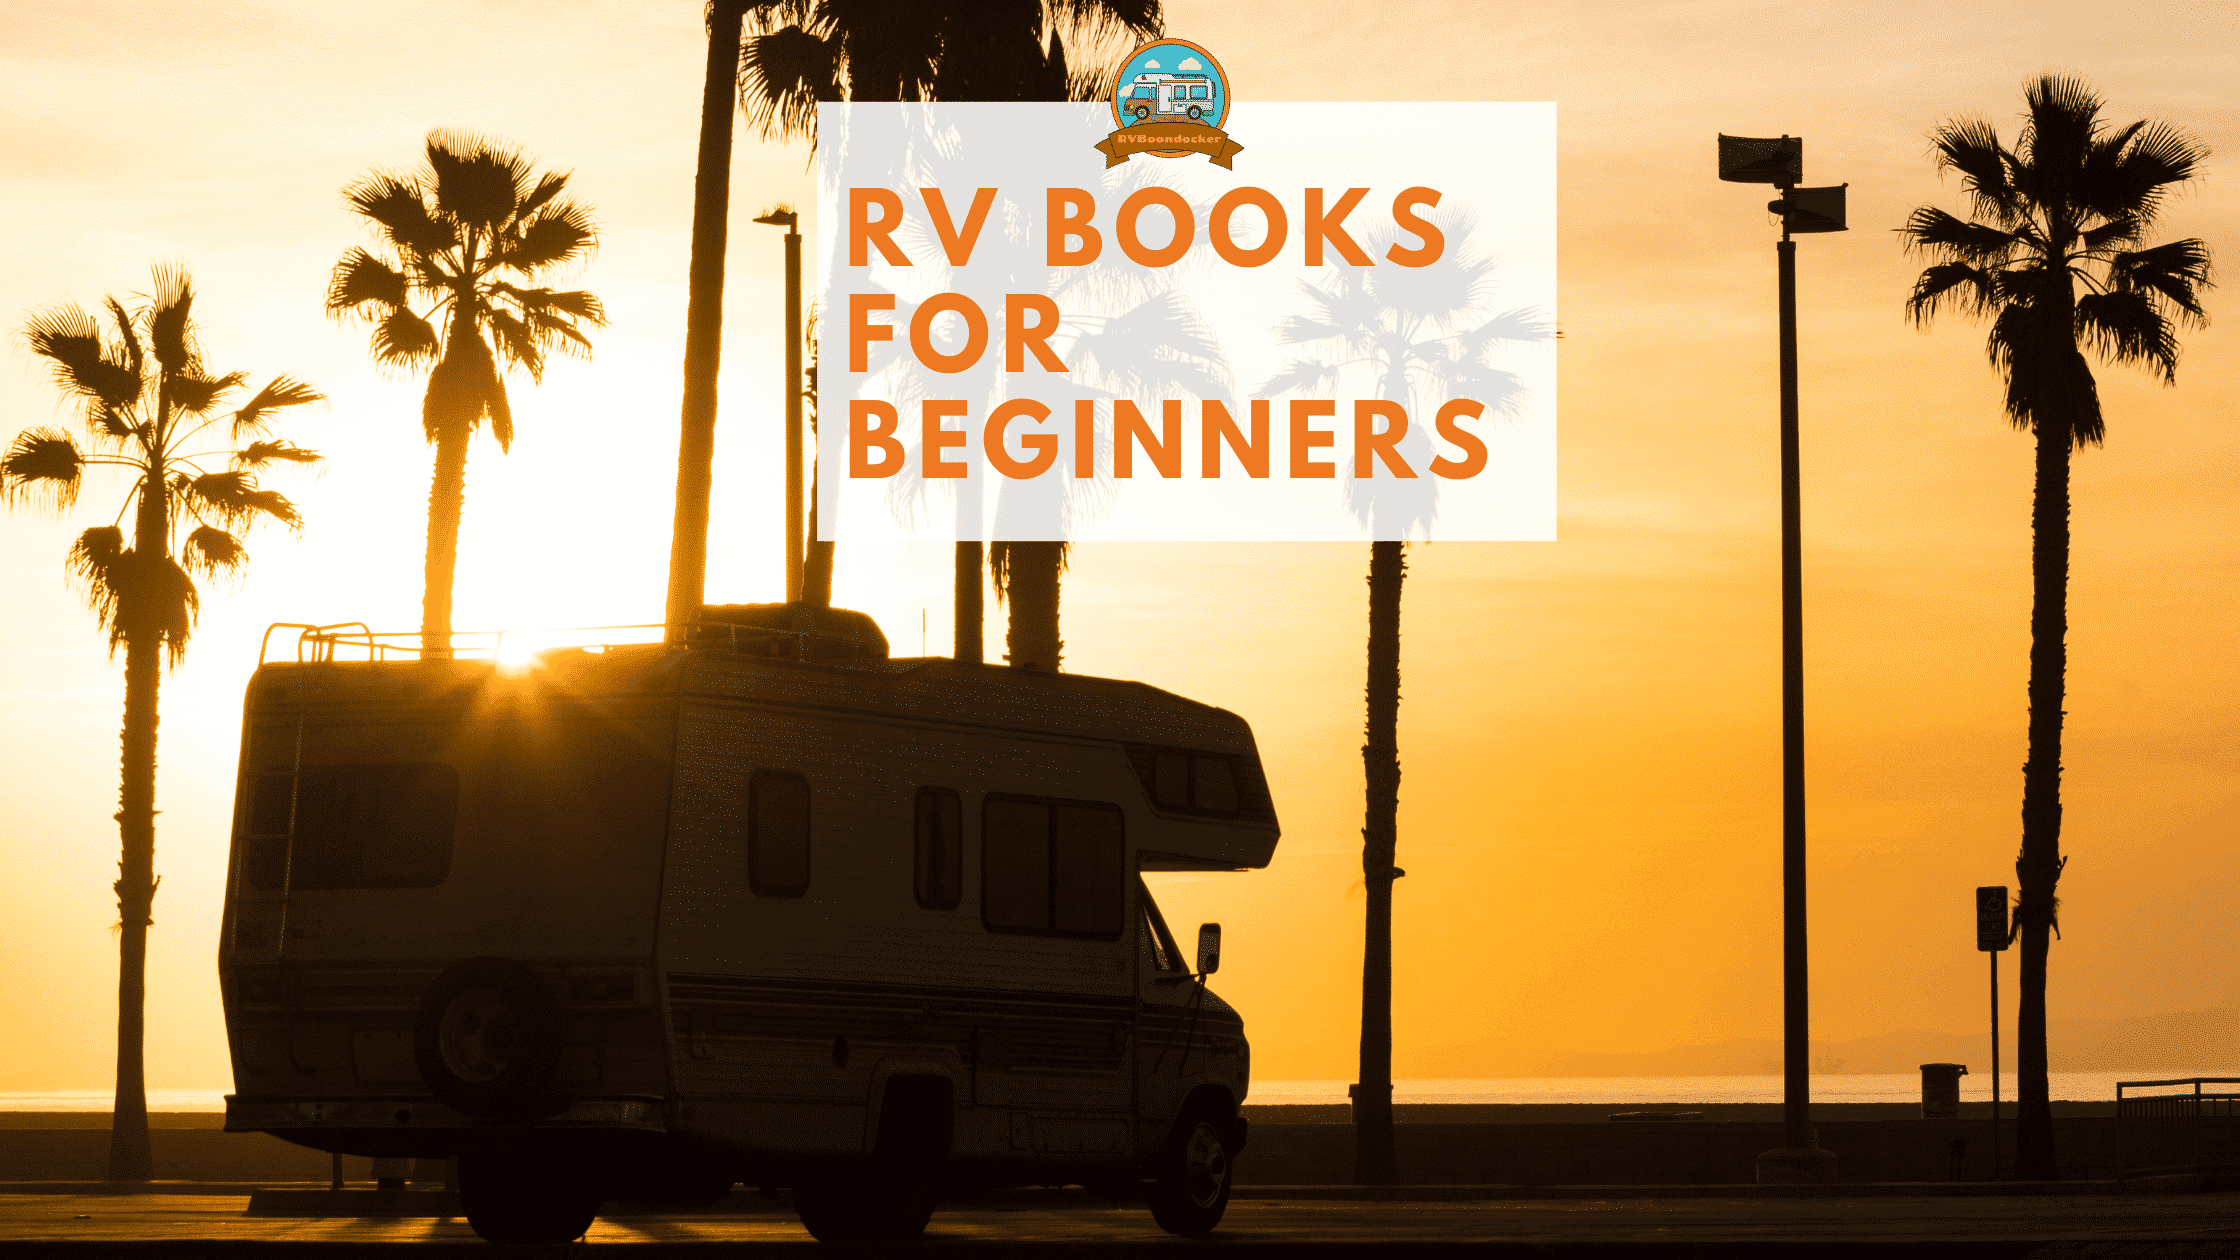 rv books for beginners title with rv camper parked by a sunset and palm trees